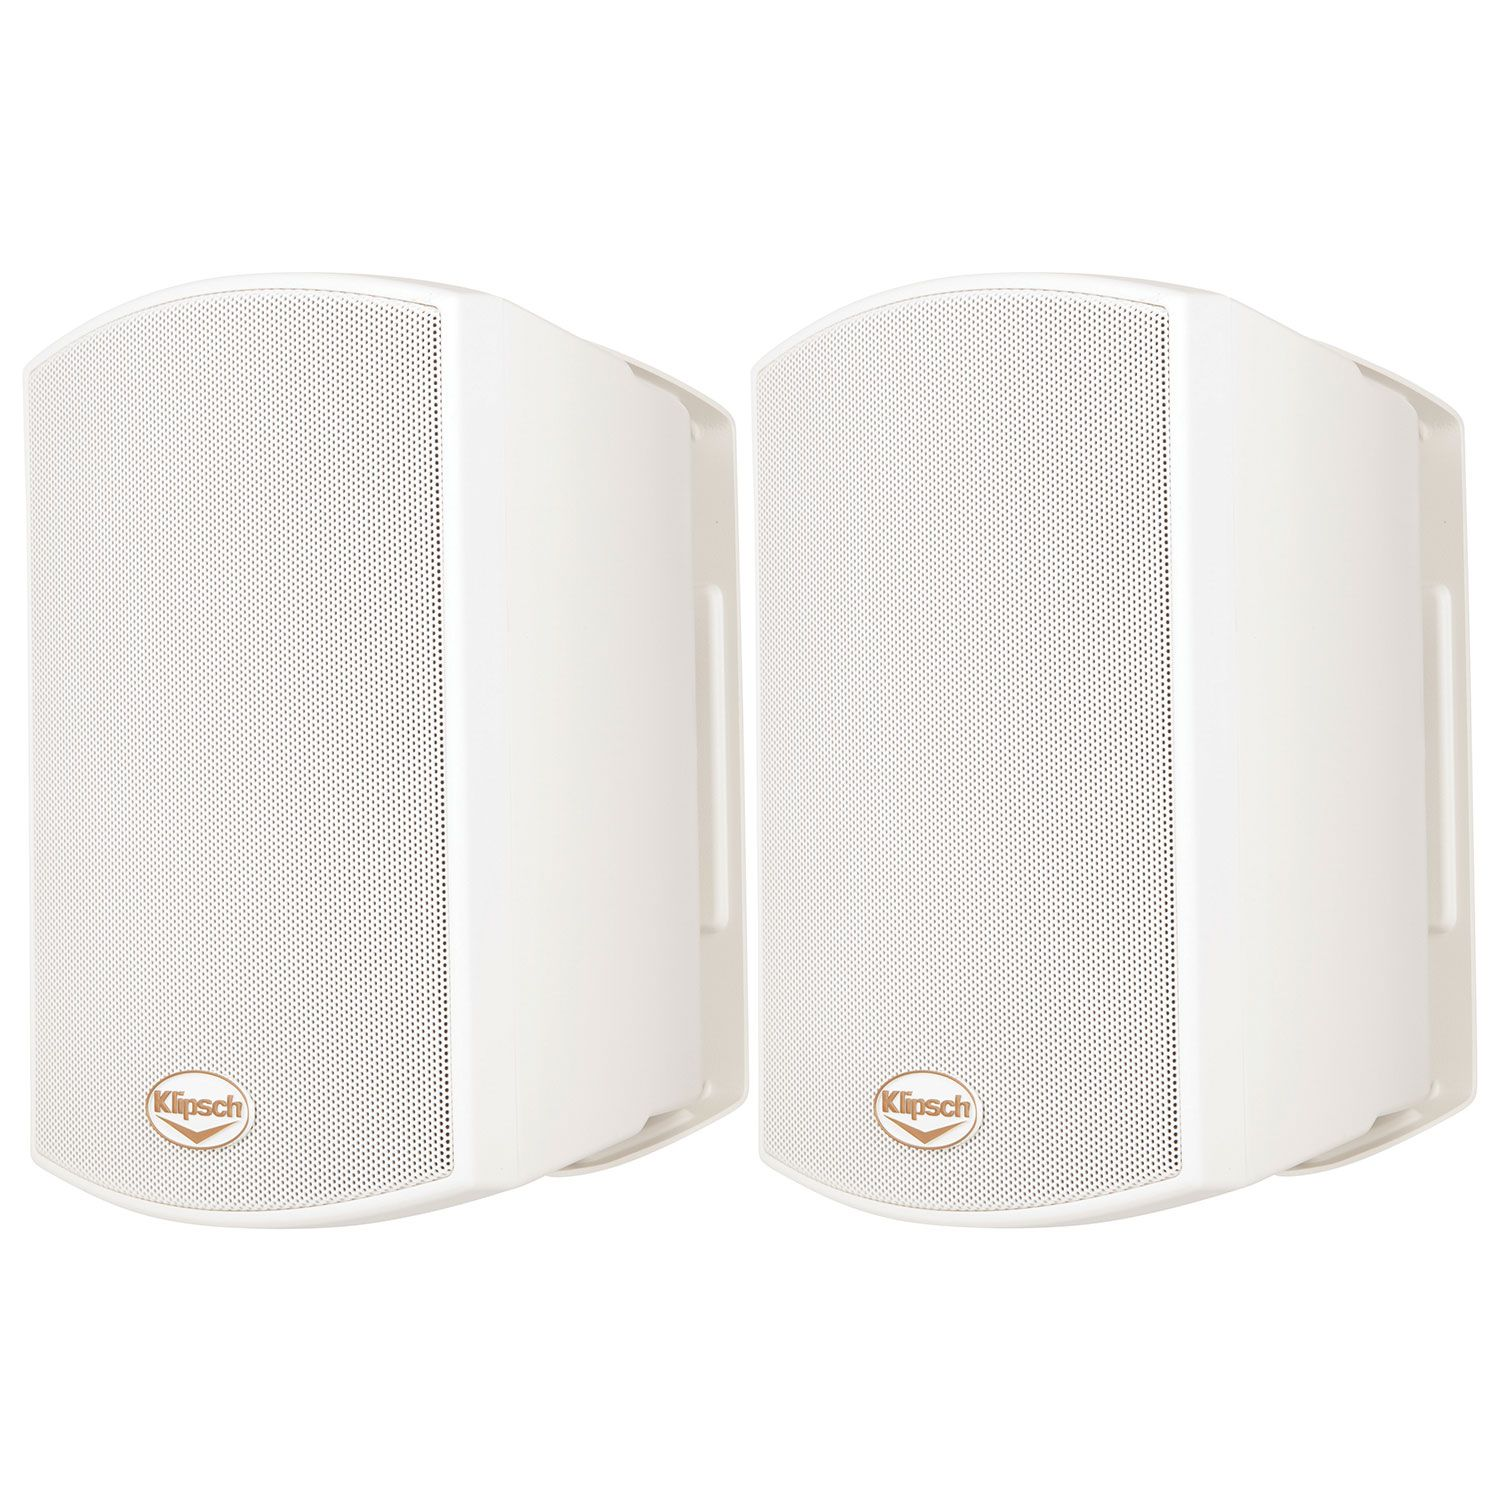 Klipsch AW-400 50-Watt All-Weather Outdoor Speakers - Pair : Home ...